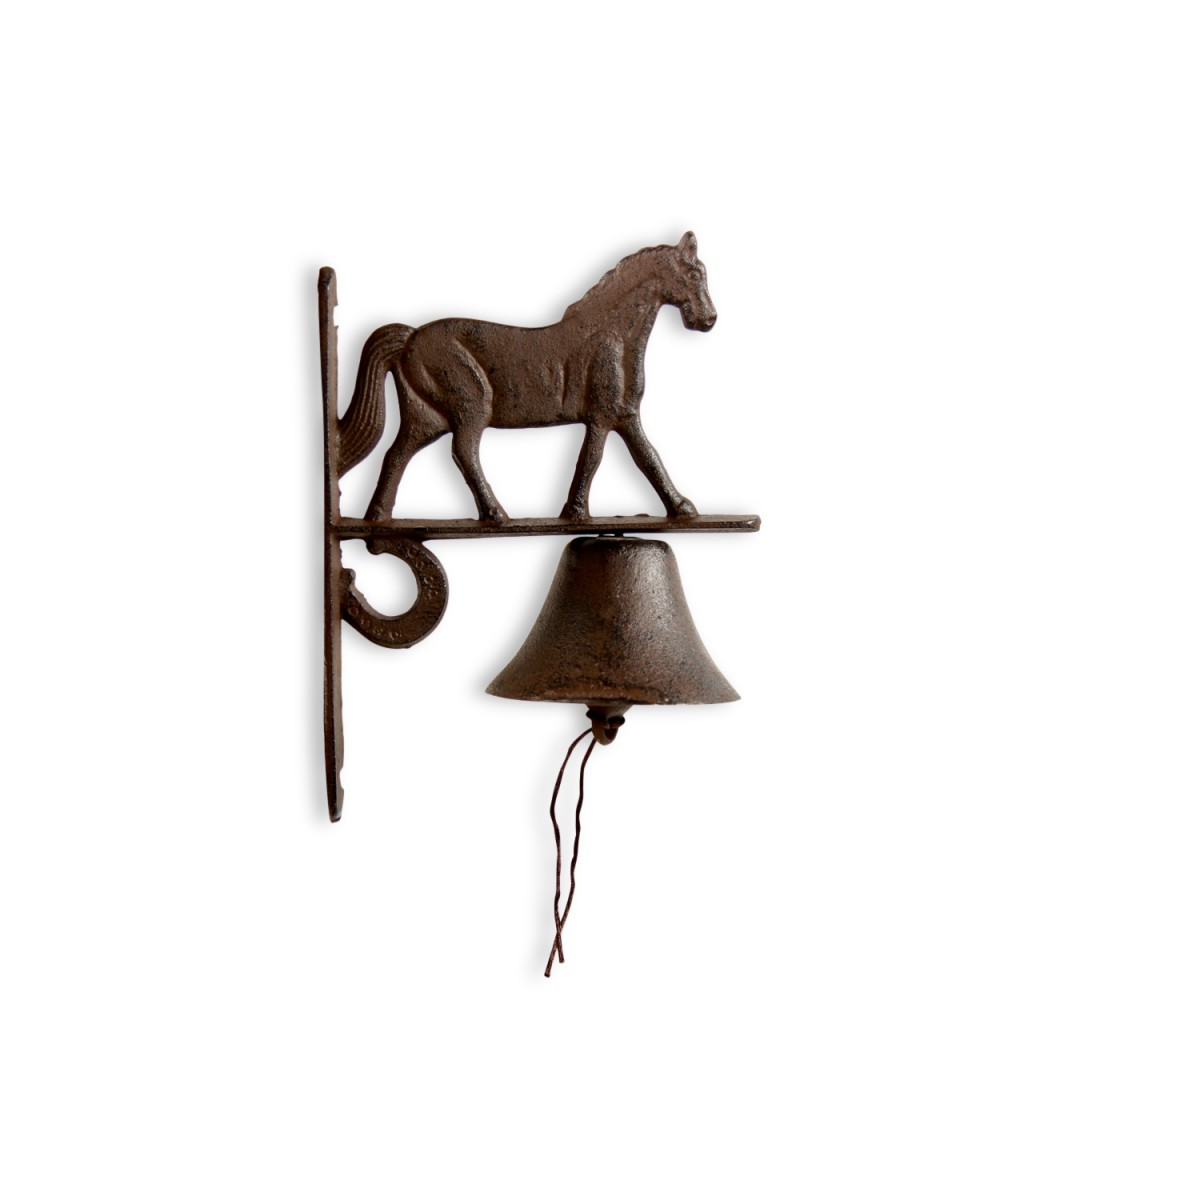 Cloche Cheval Fonte Marron 19x11x25cm